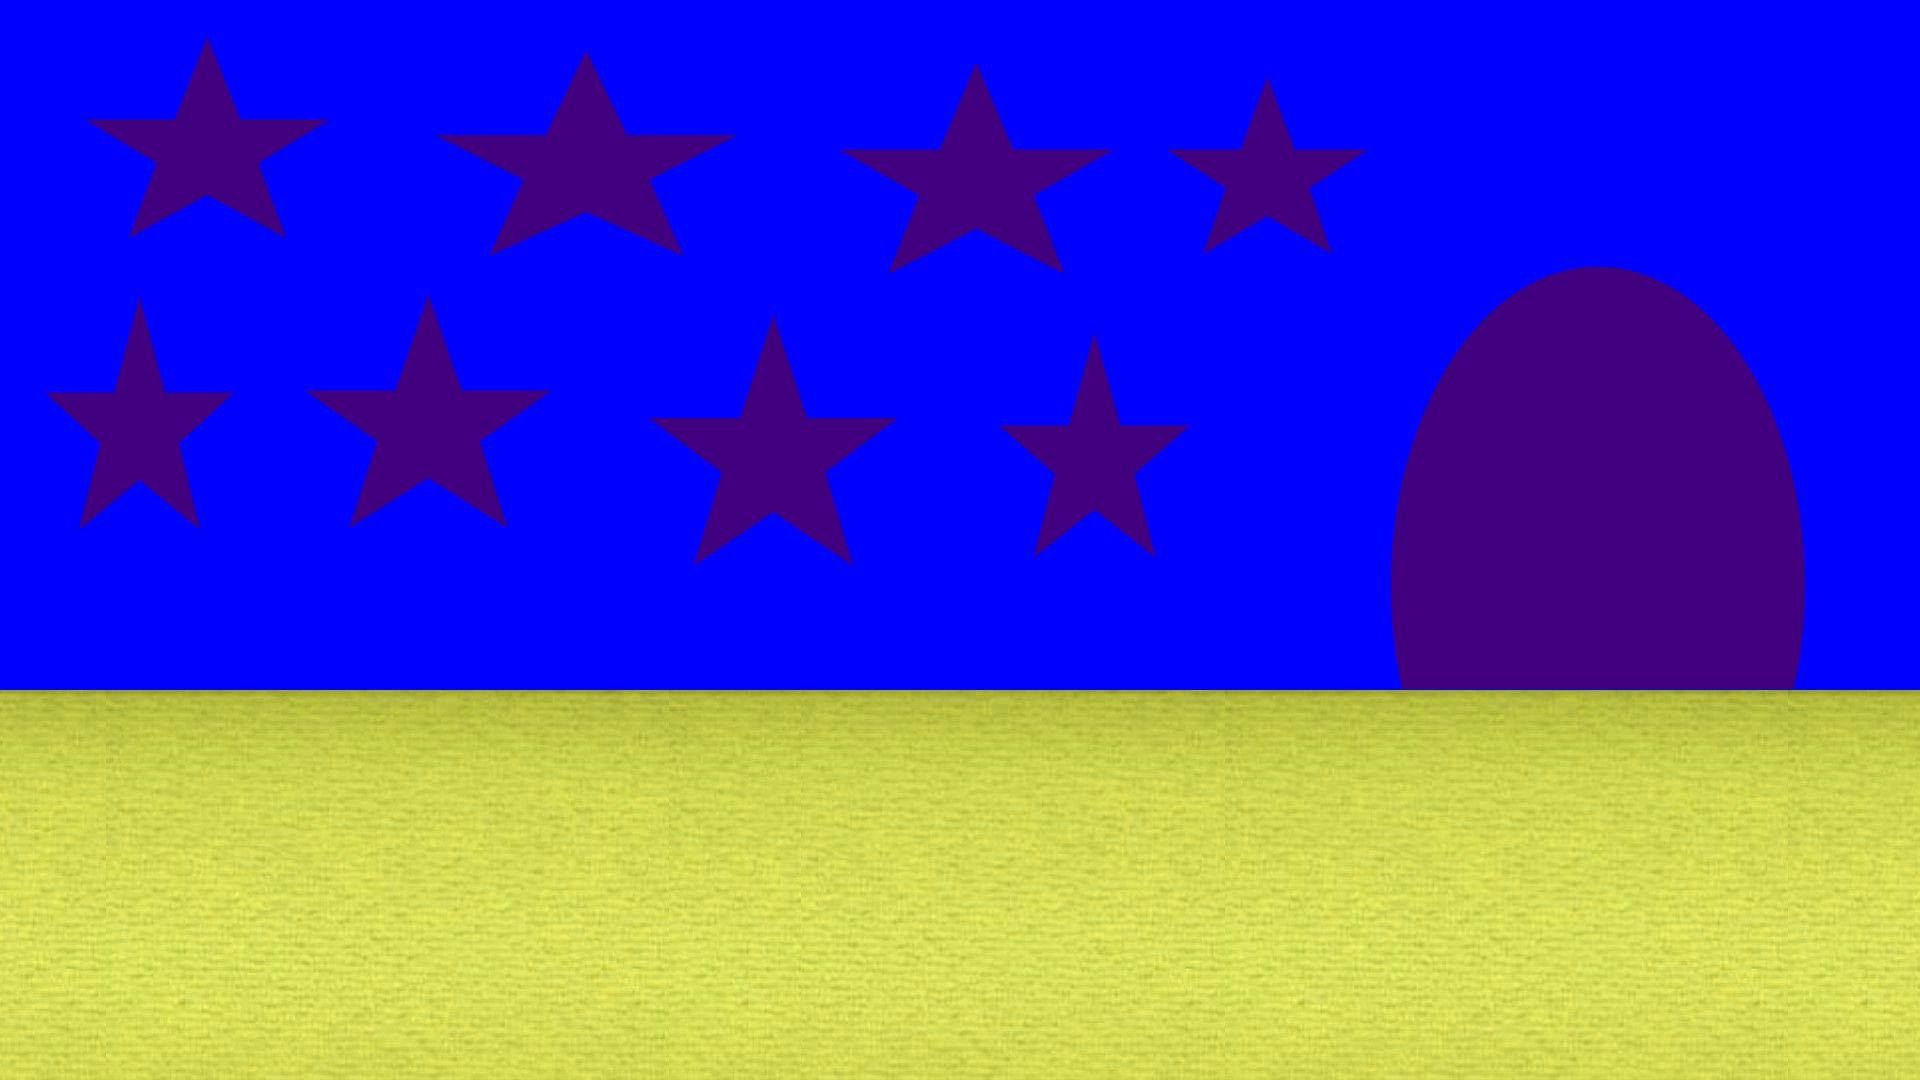 Last One How Many Stars Are They In 2020 Country Flags Eu Flag Imagine